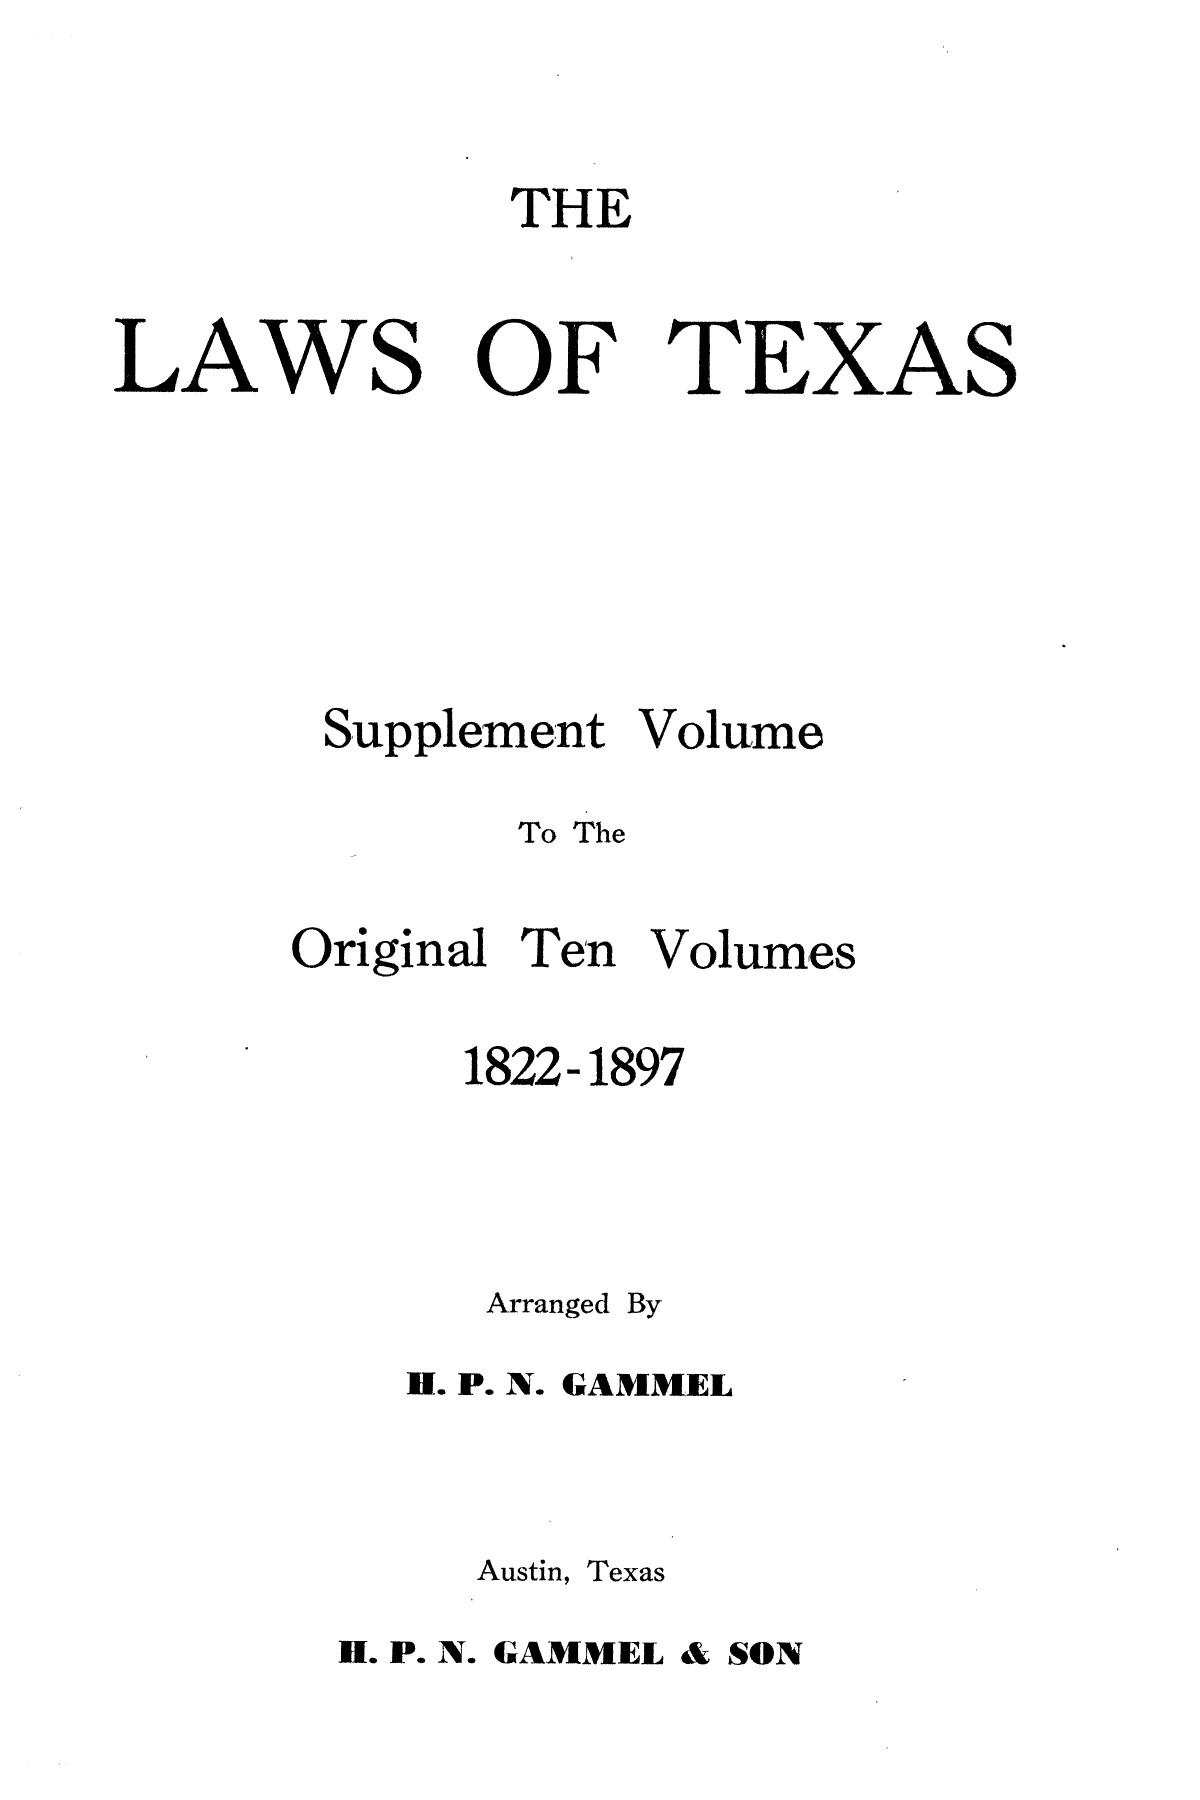 The Laws of Texas, 1935-1937 [Volume 30]                                                                                                      [Sequence #]: 1 of 2460